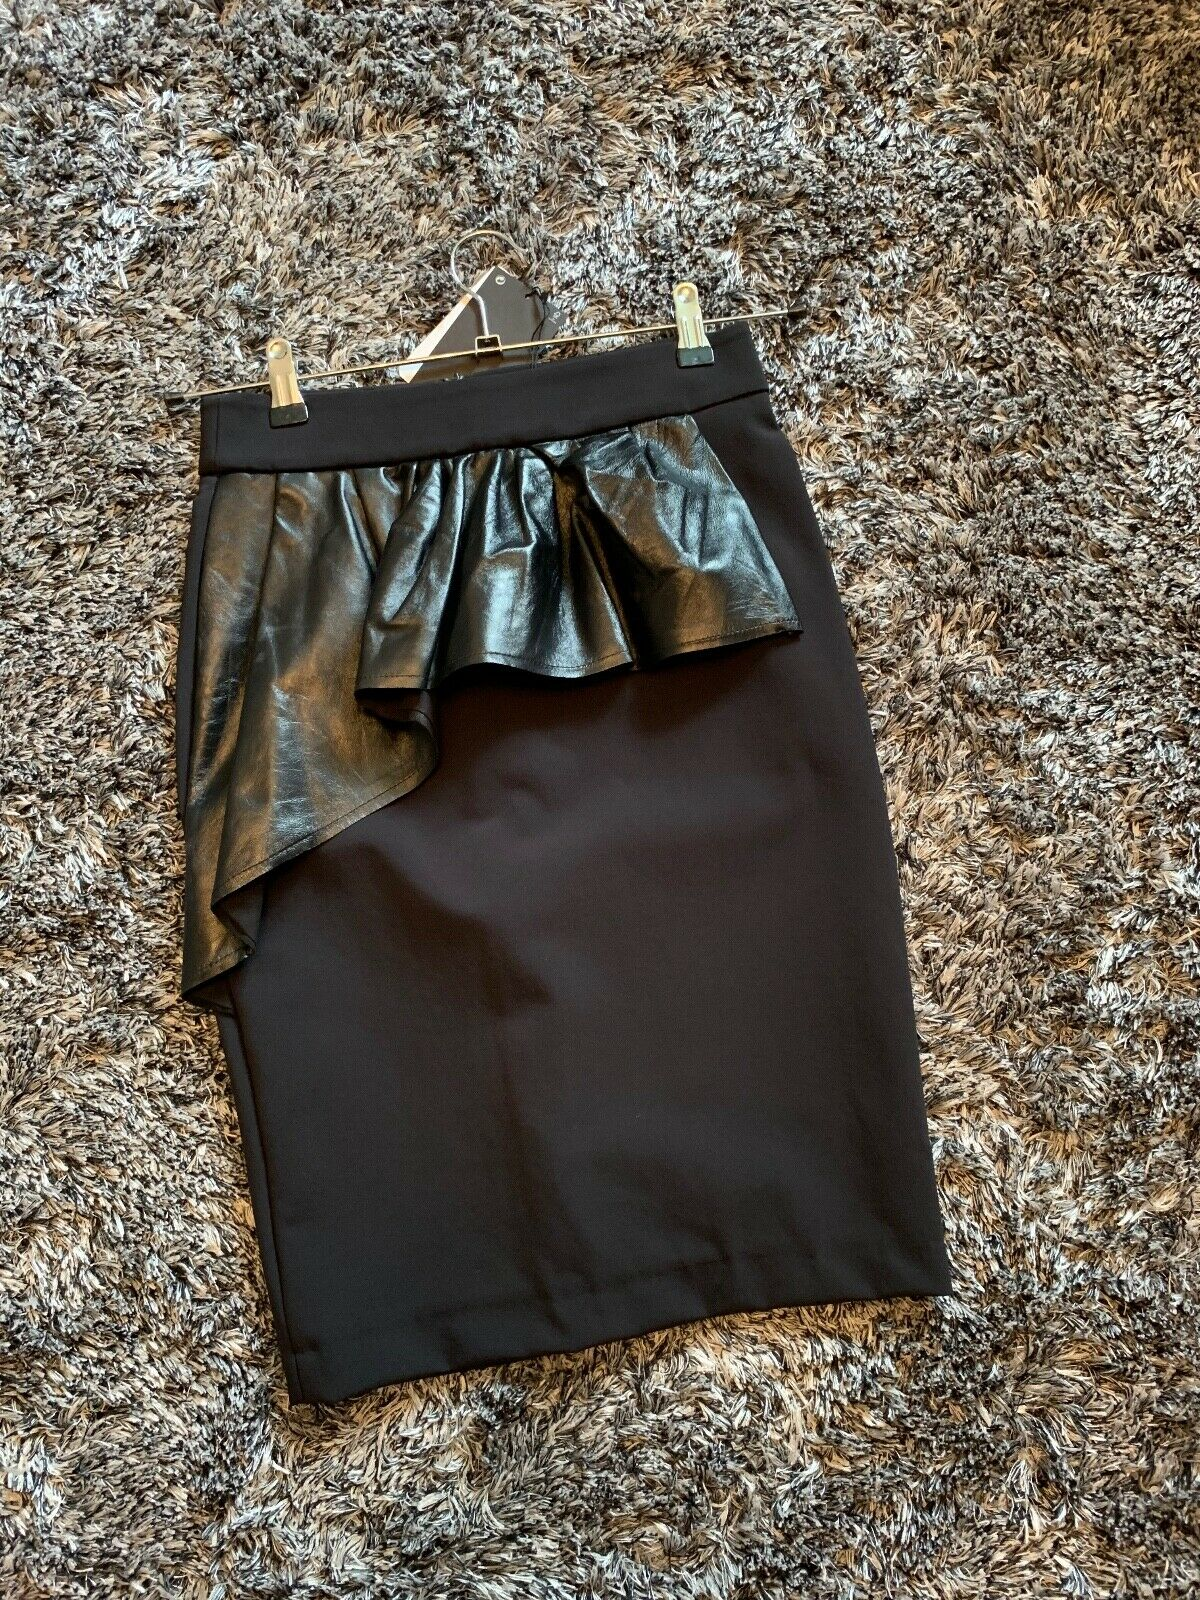 TAGS WITH neu ZARA SMtutti X LEATHER FAUX SKIRT PENCIL